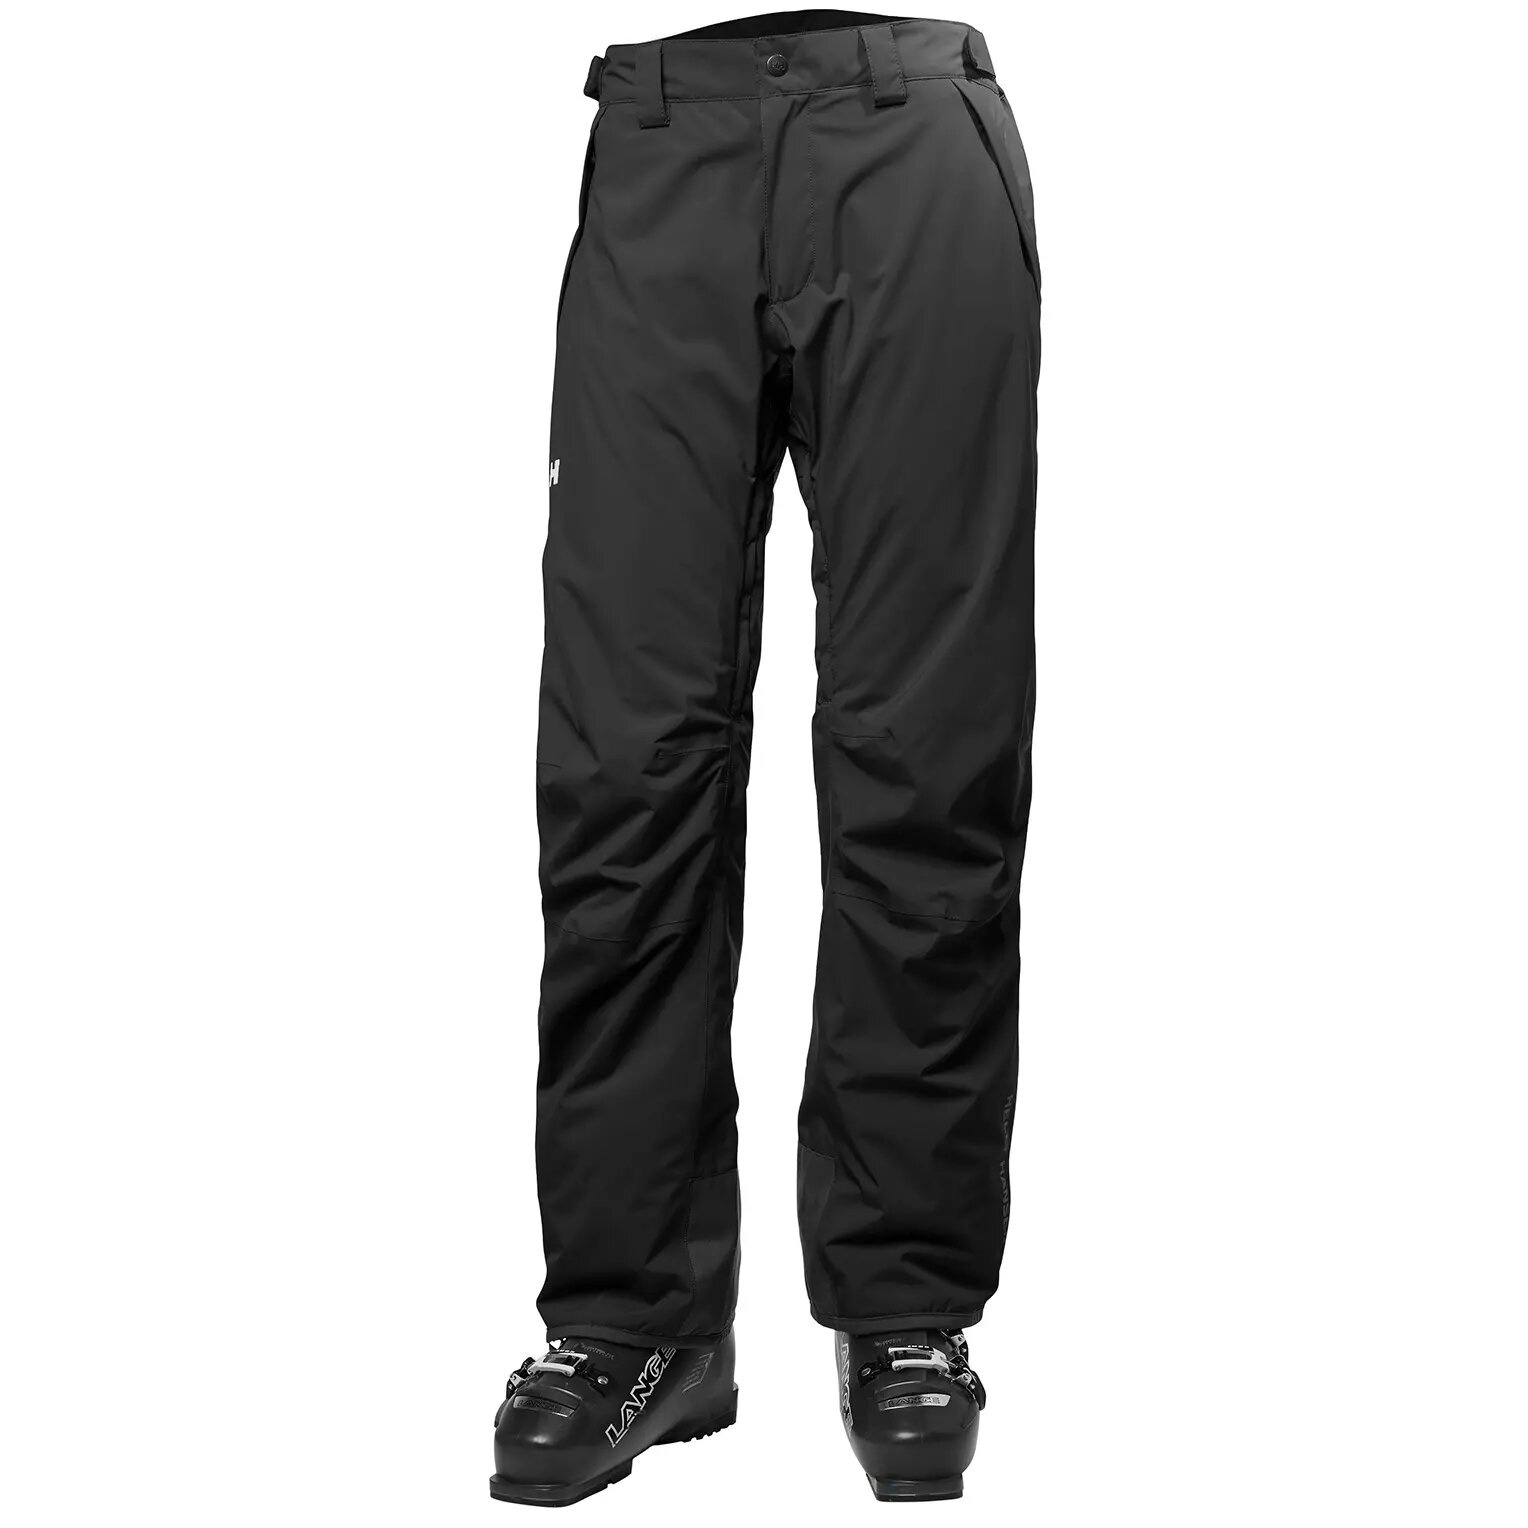 Veocity Insulated Pant, Black